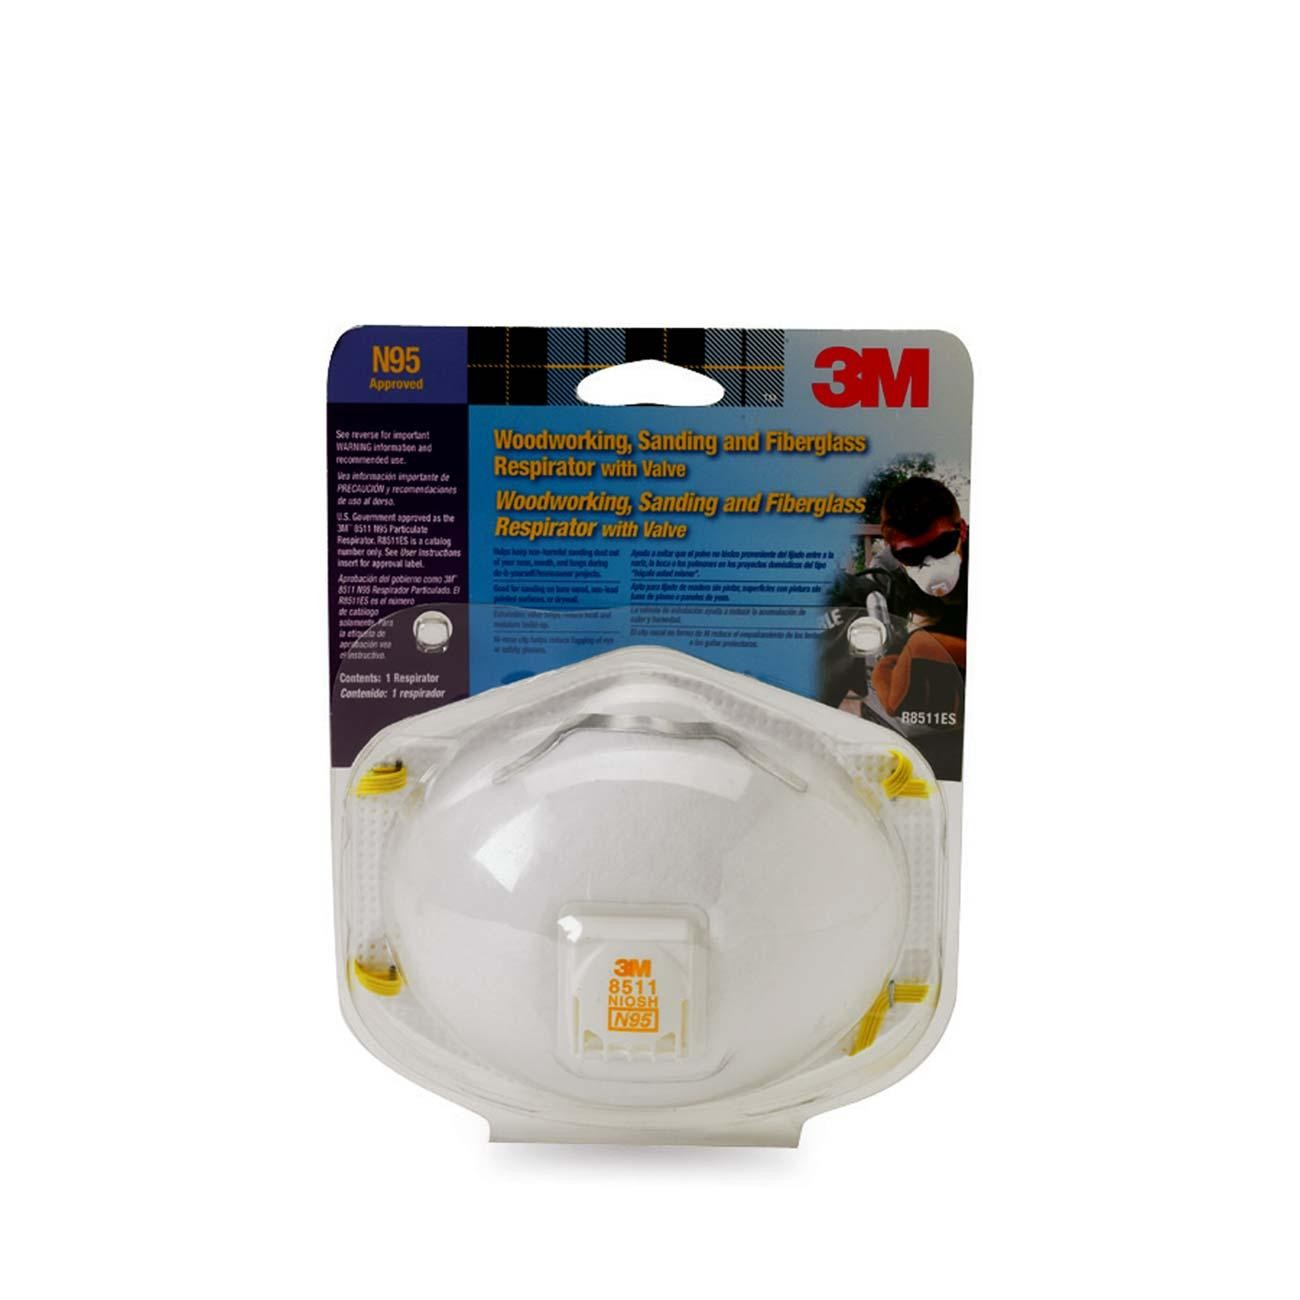 N95 Particulate Respirator by 3M